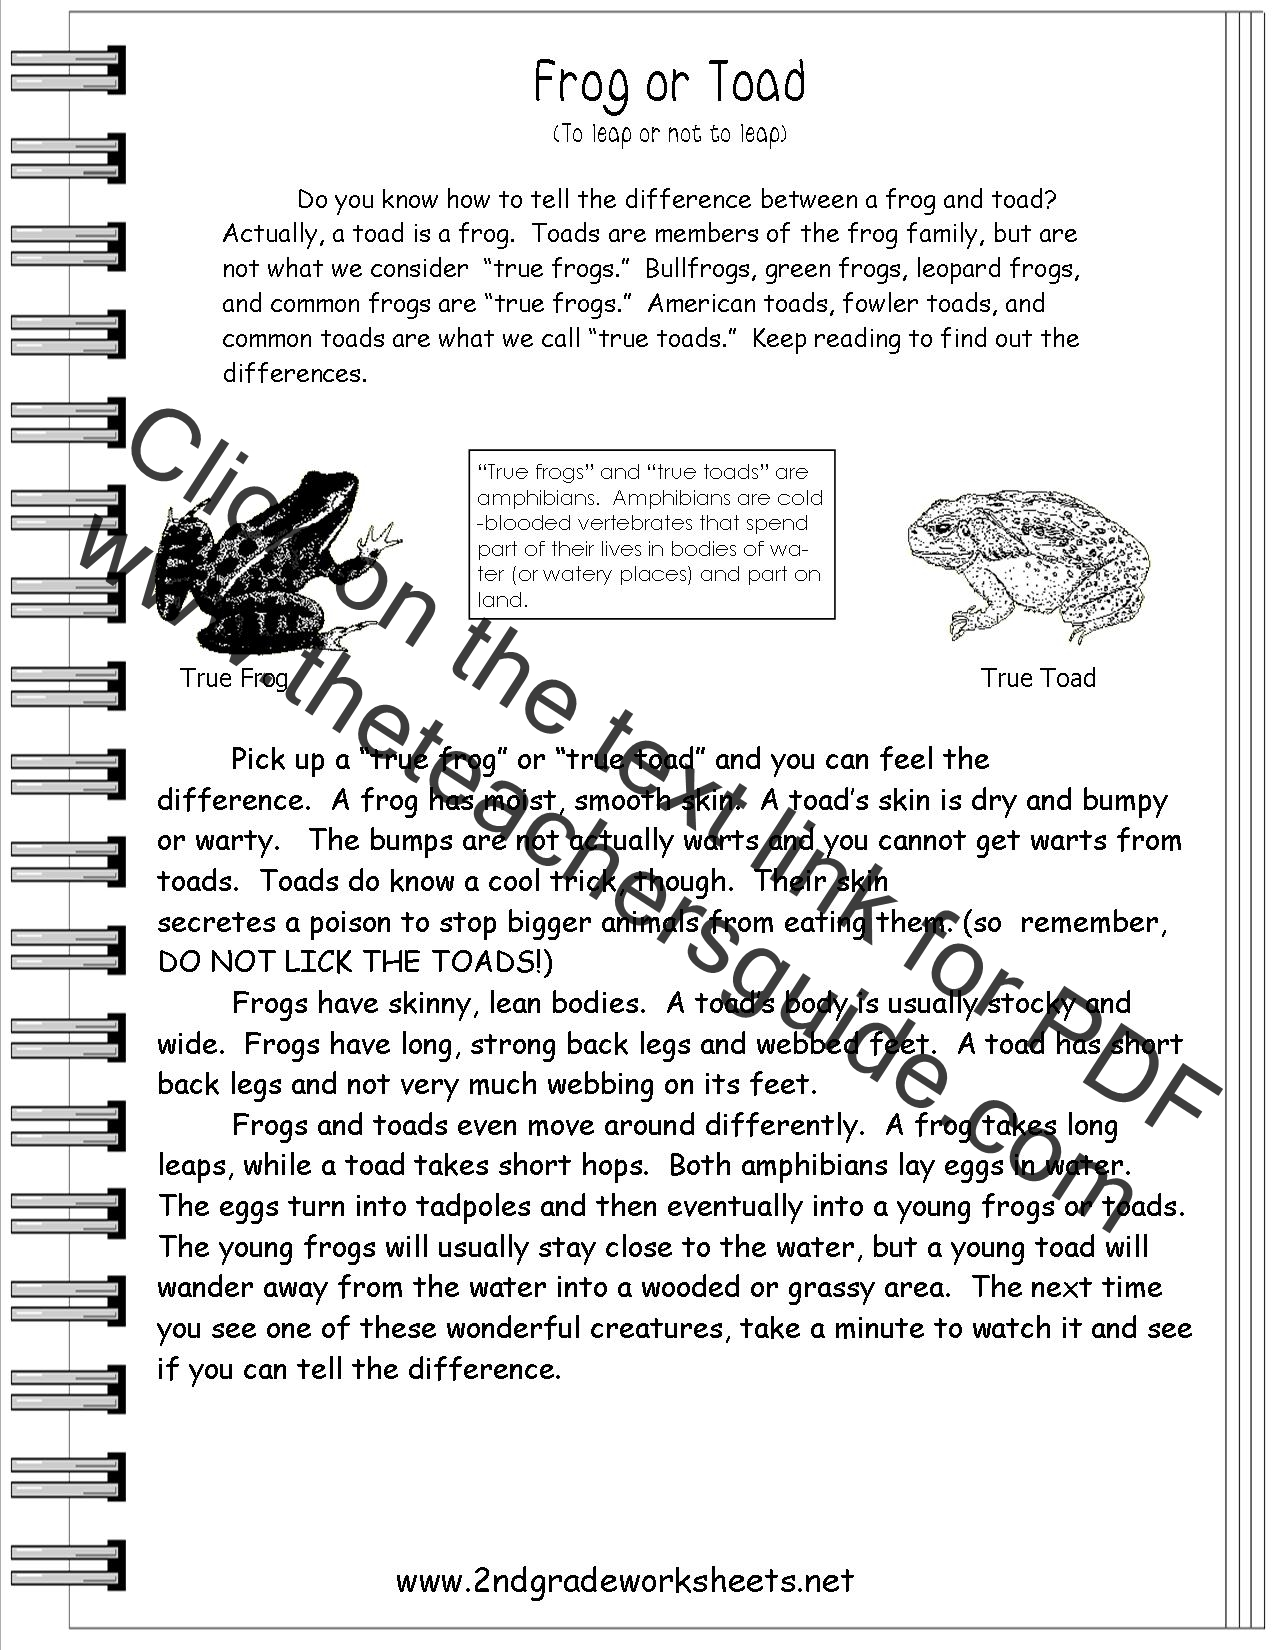 Worksheets Informational Text Worksheets reading informational text worksheets frog or toad worksheet